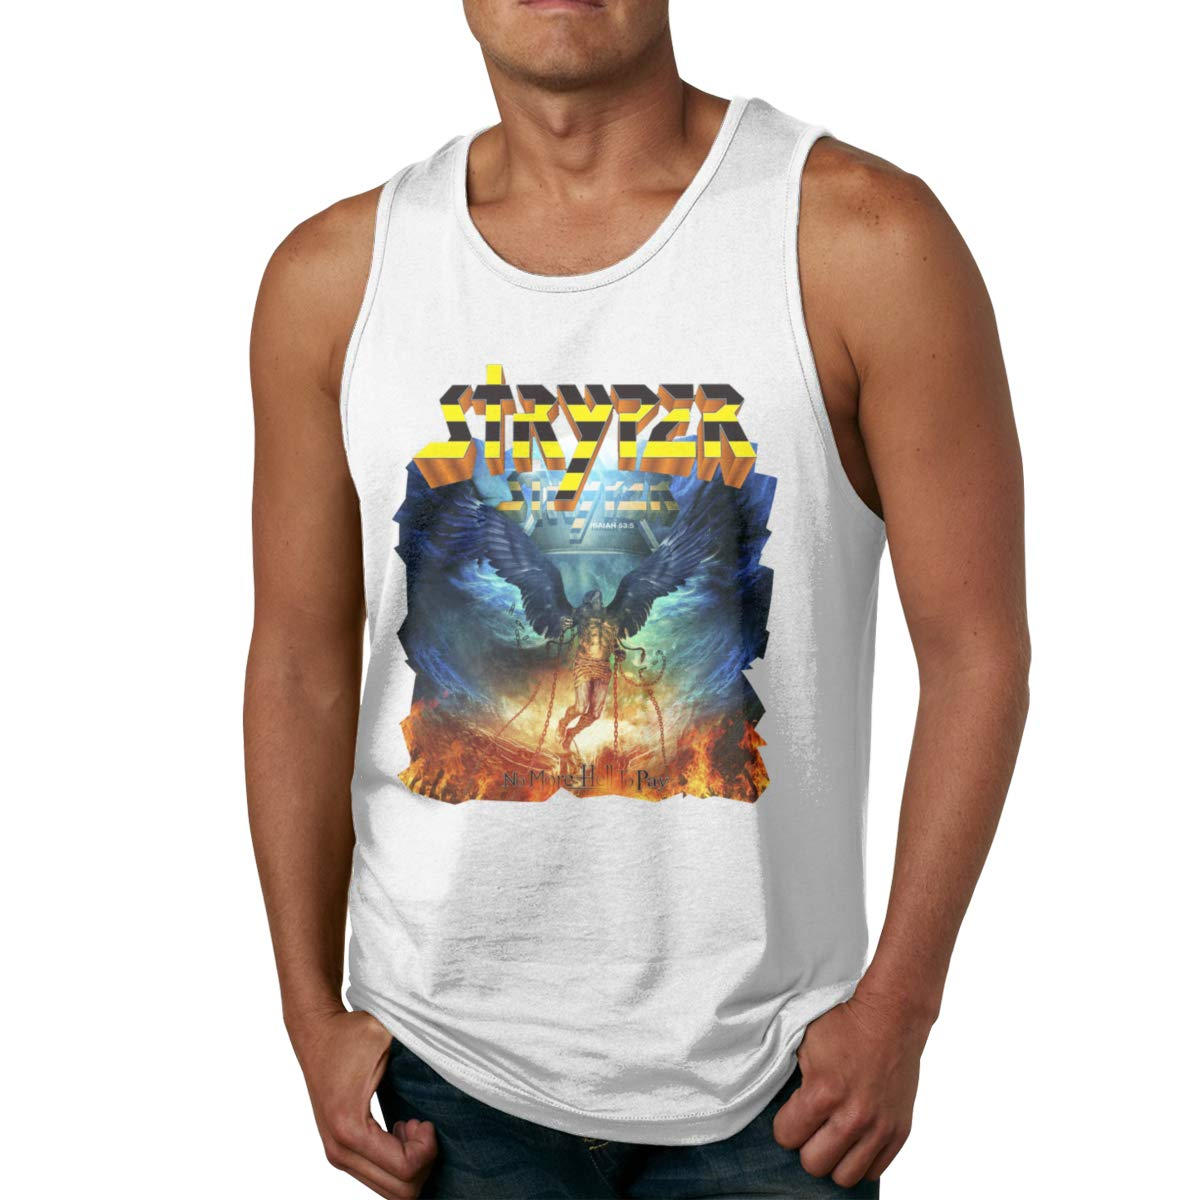 Seuriamin Stryper No More Hell To Pay S Summer Walk Sleeveless Tank Top T Shirts